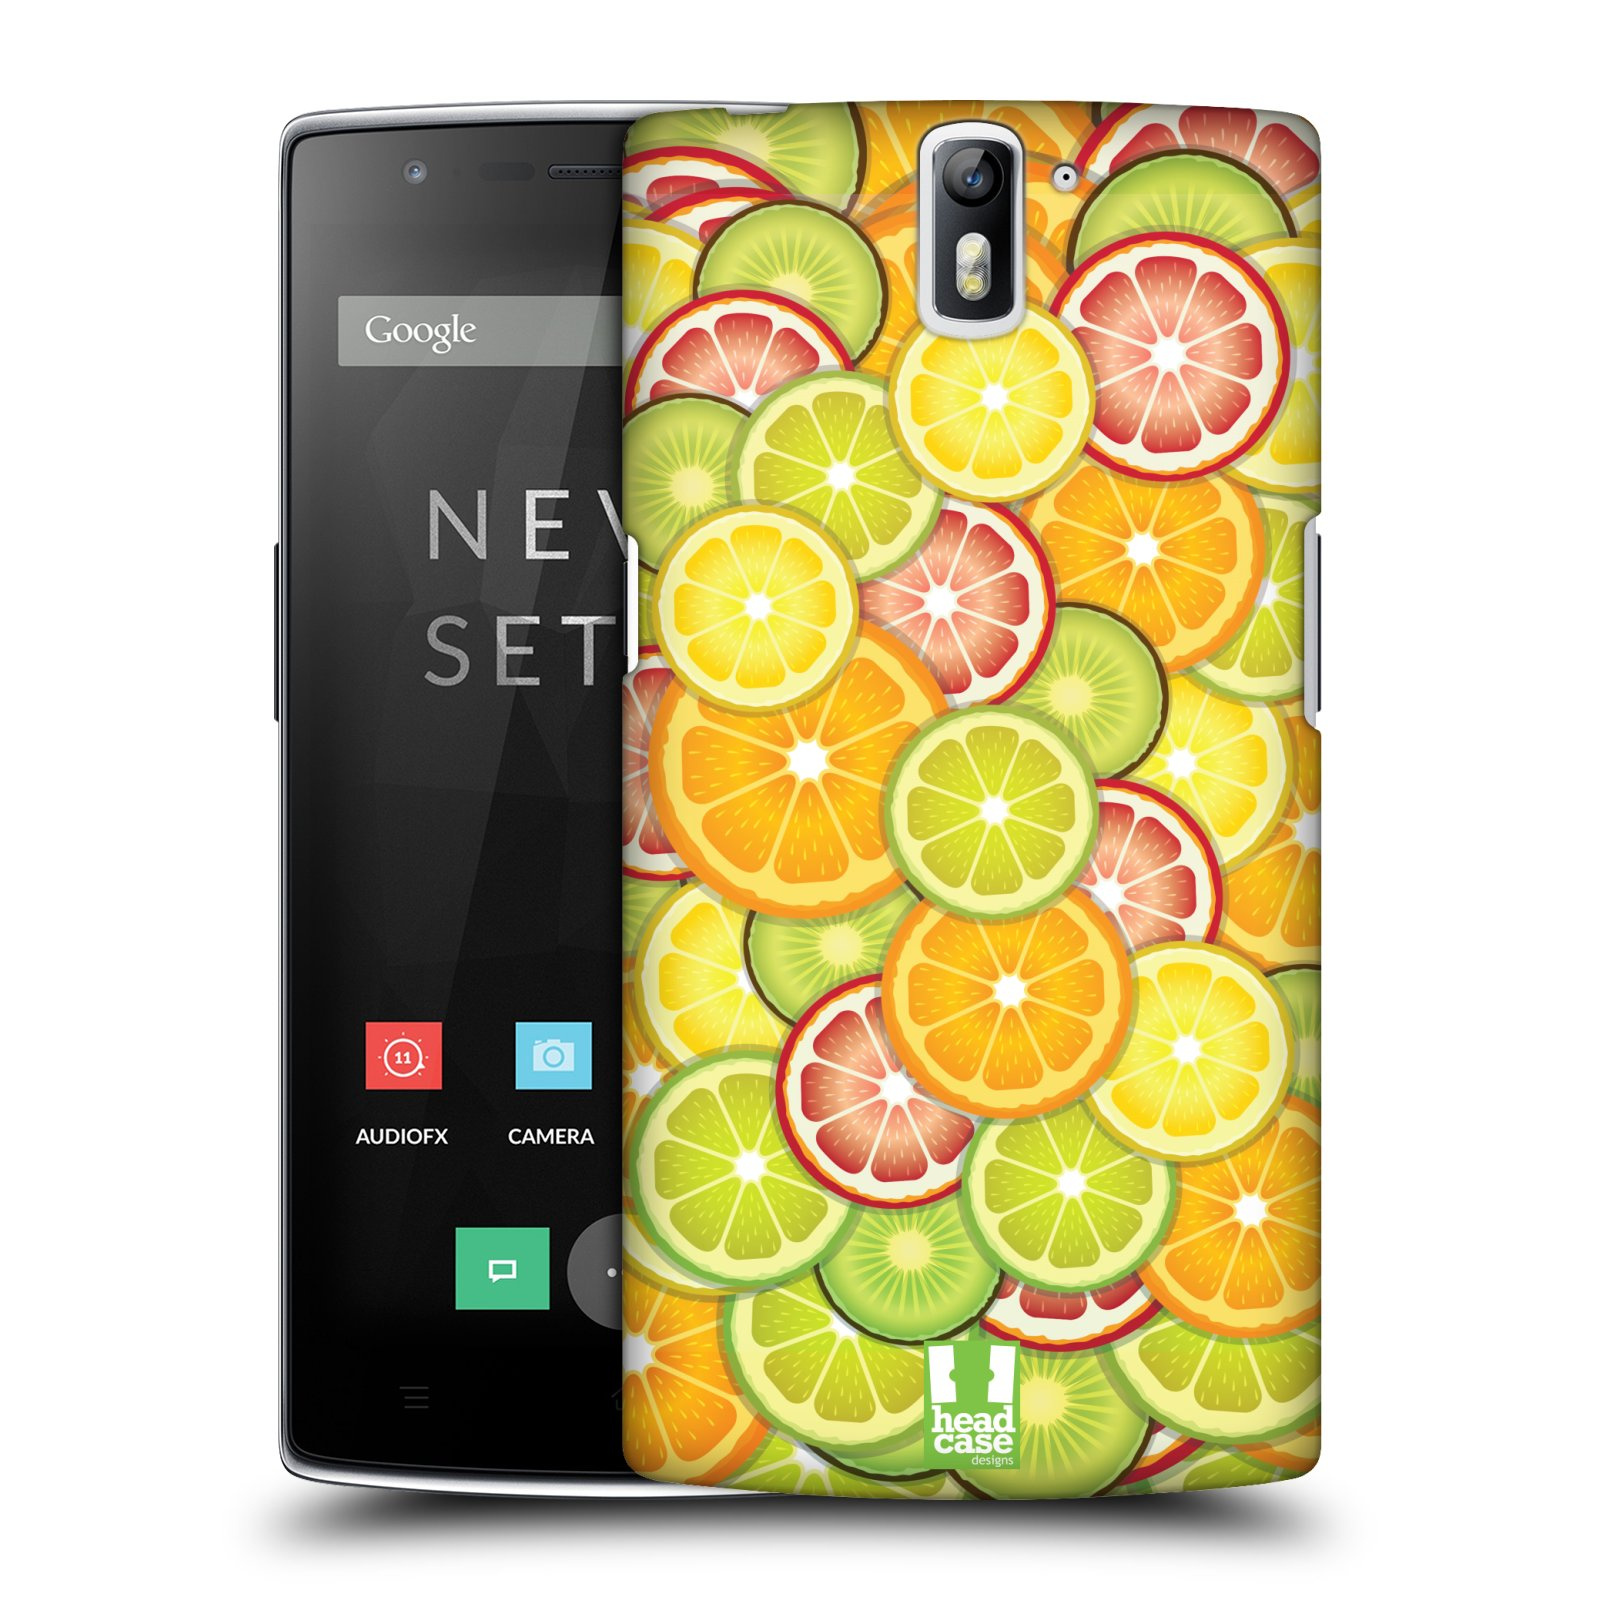 HEAD CASE DESIGNS SUPER FOODS HARD BACK CASE FOR ONEPLUS ONE